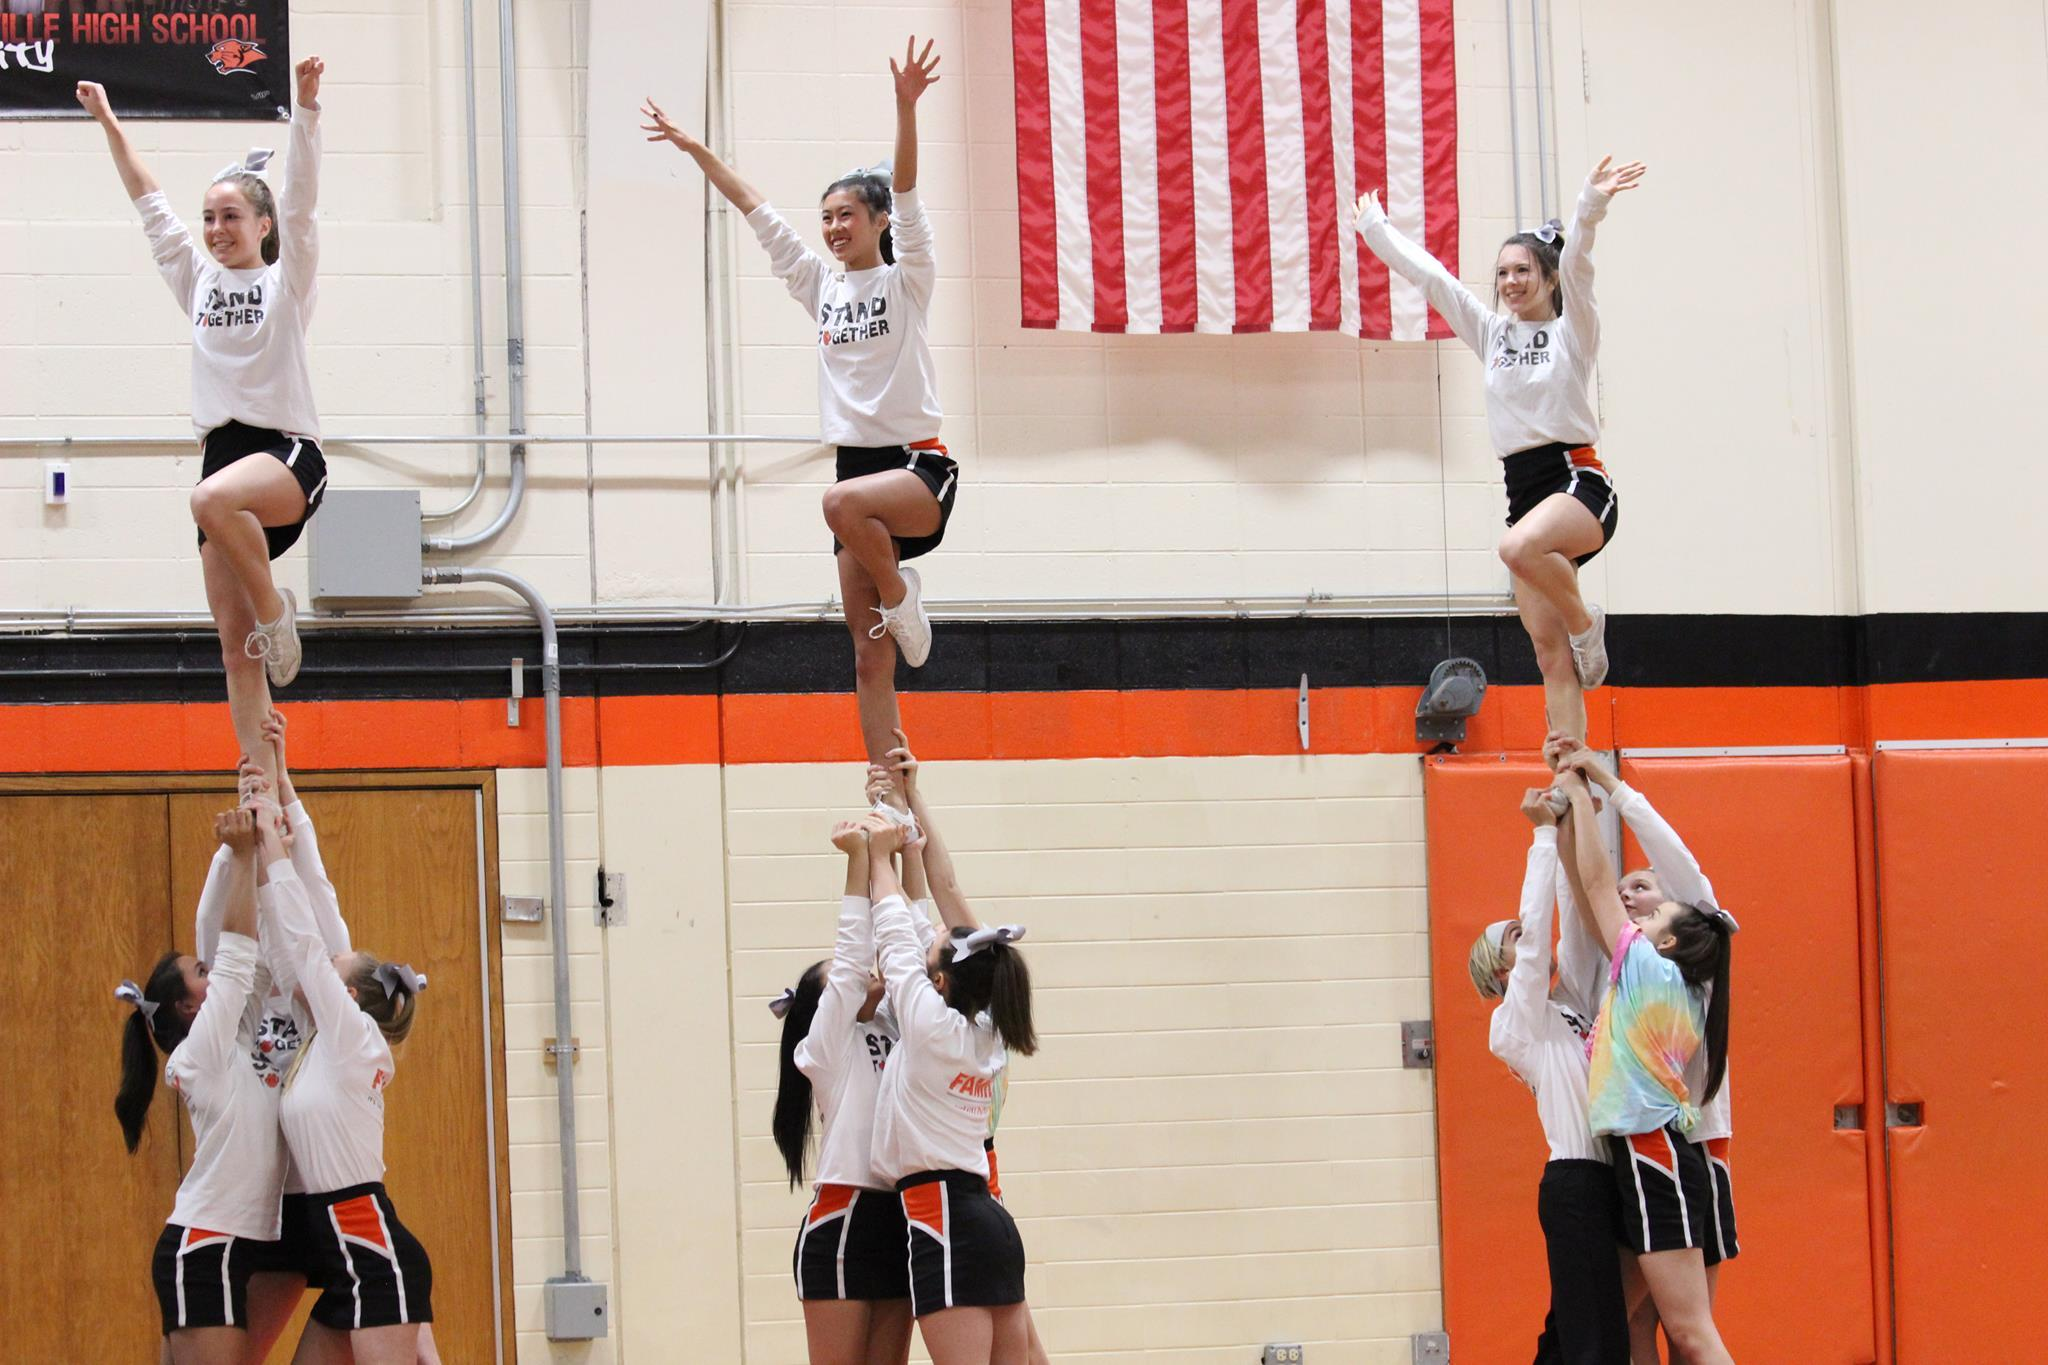 During the boys basketball game vs. Lake Forest Academy, the Cheer team wore